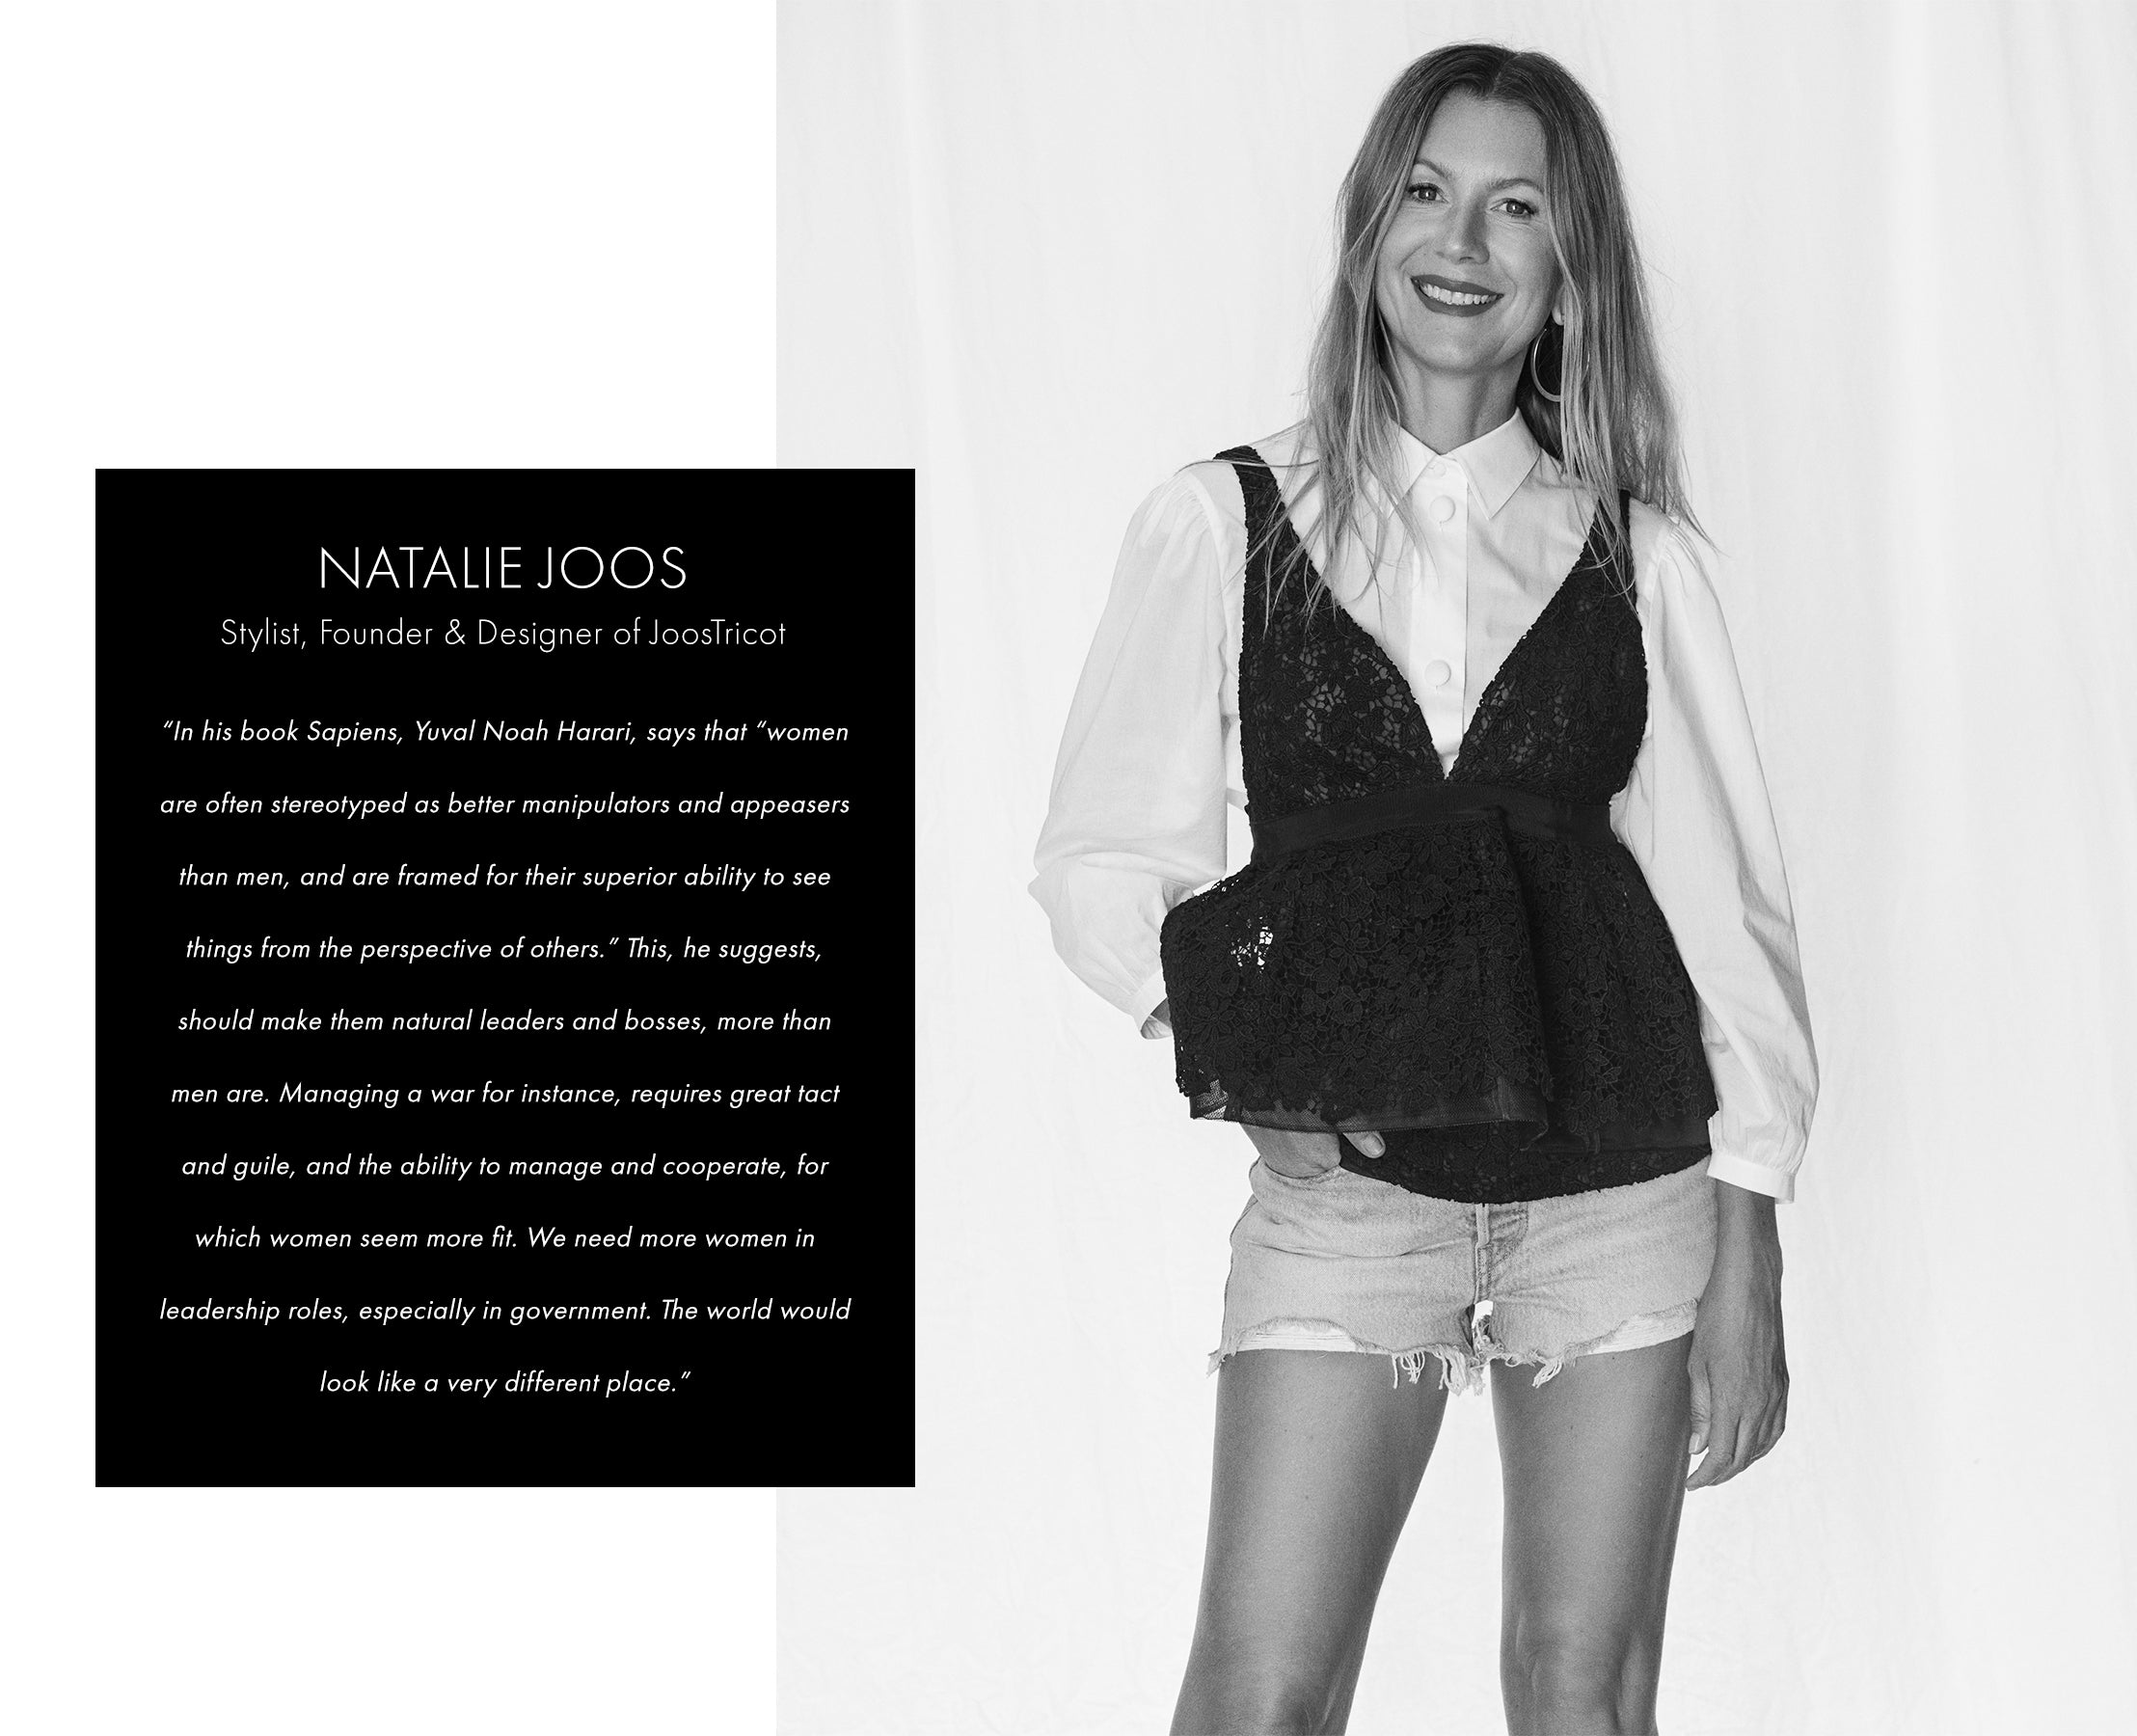 Natalie Joos in white button down and black lace camisole